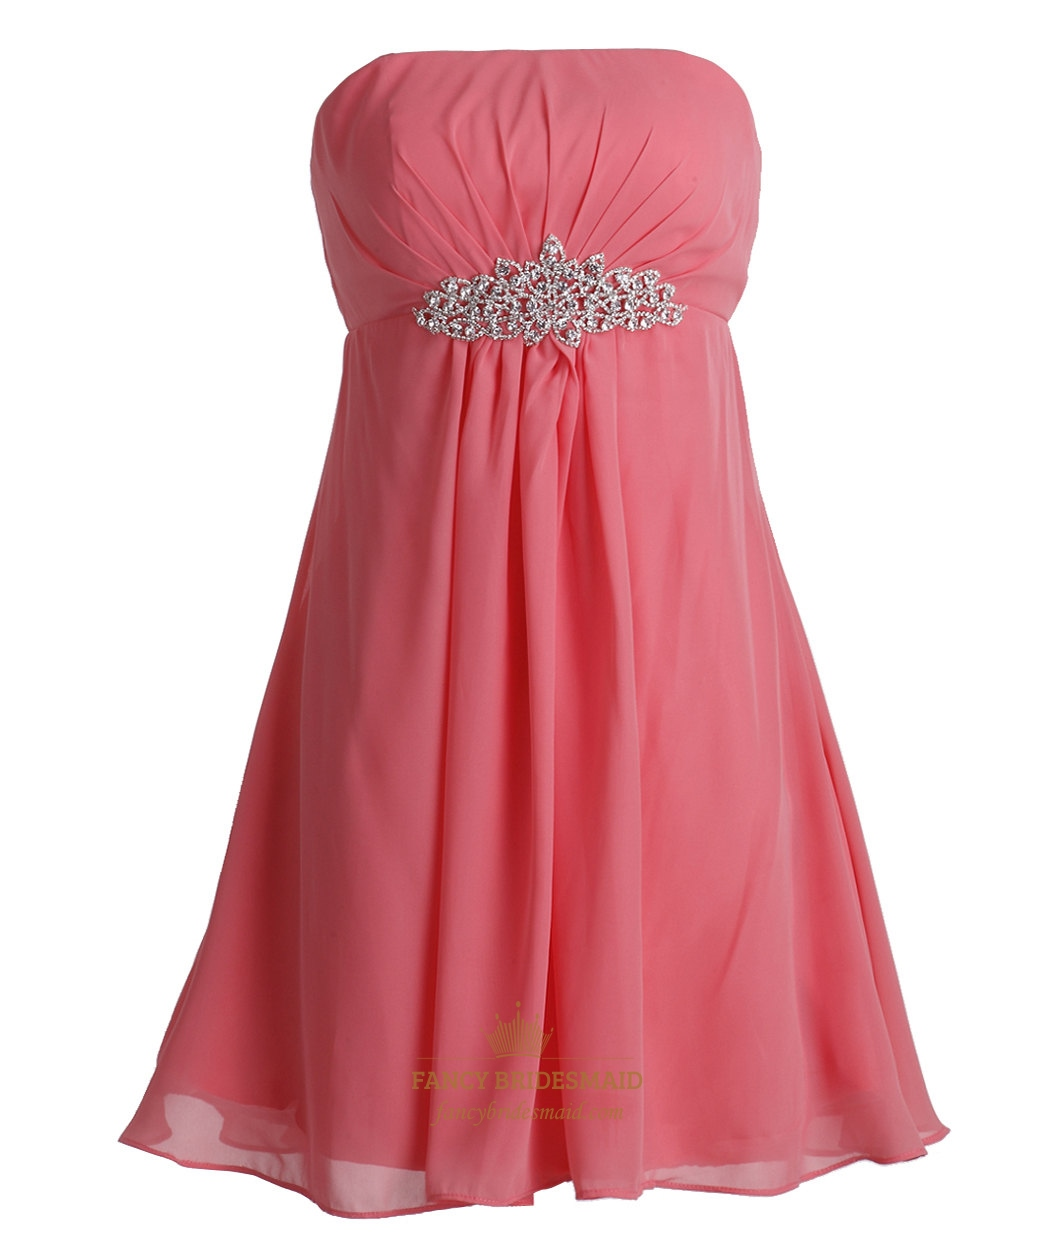 Coral Chiffon Empire Strapless Short Bridesmaid Dresses With ...